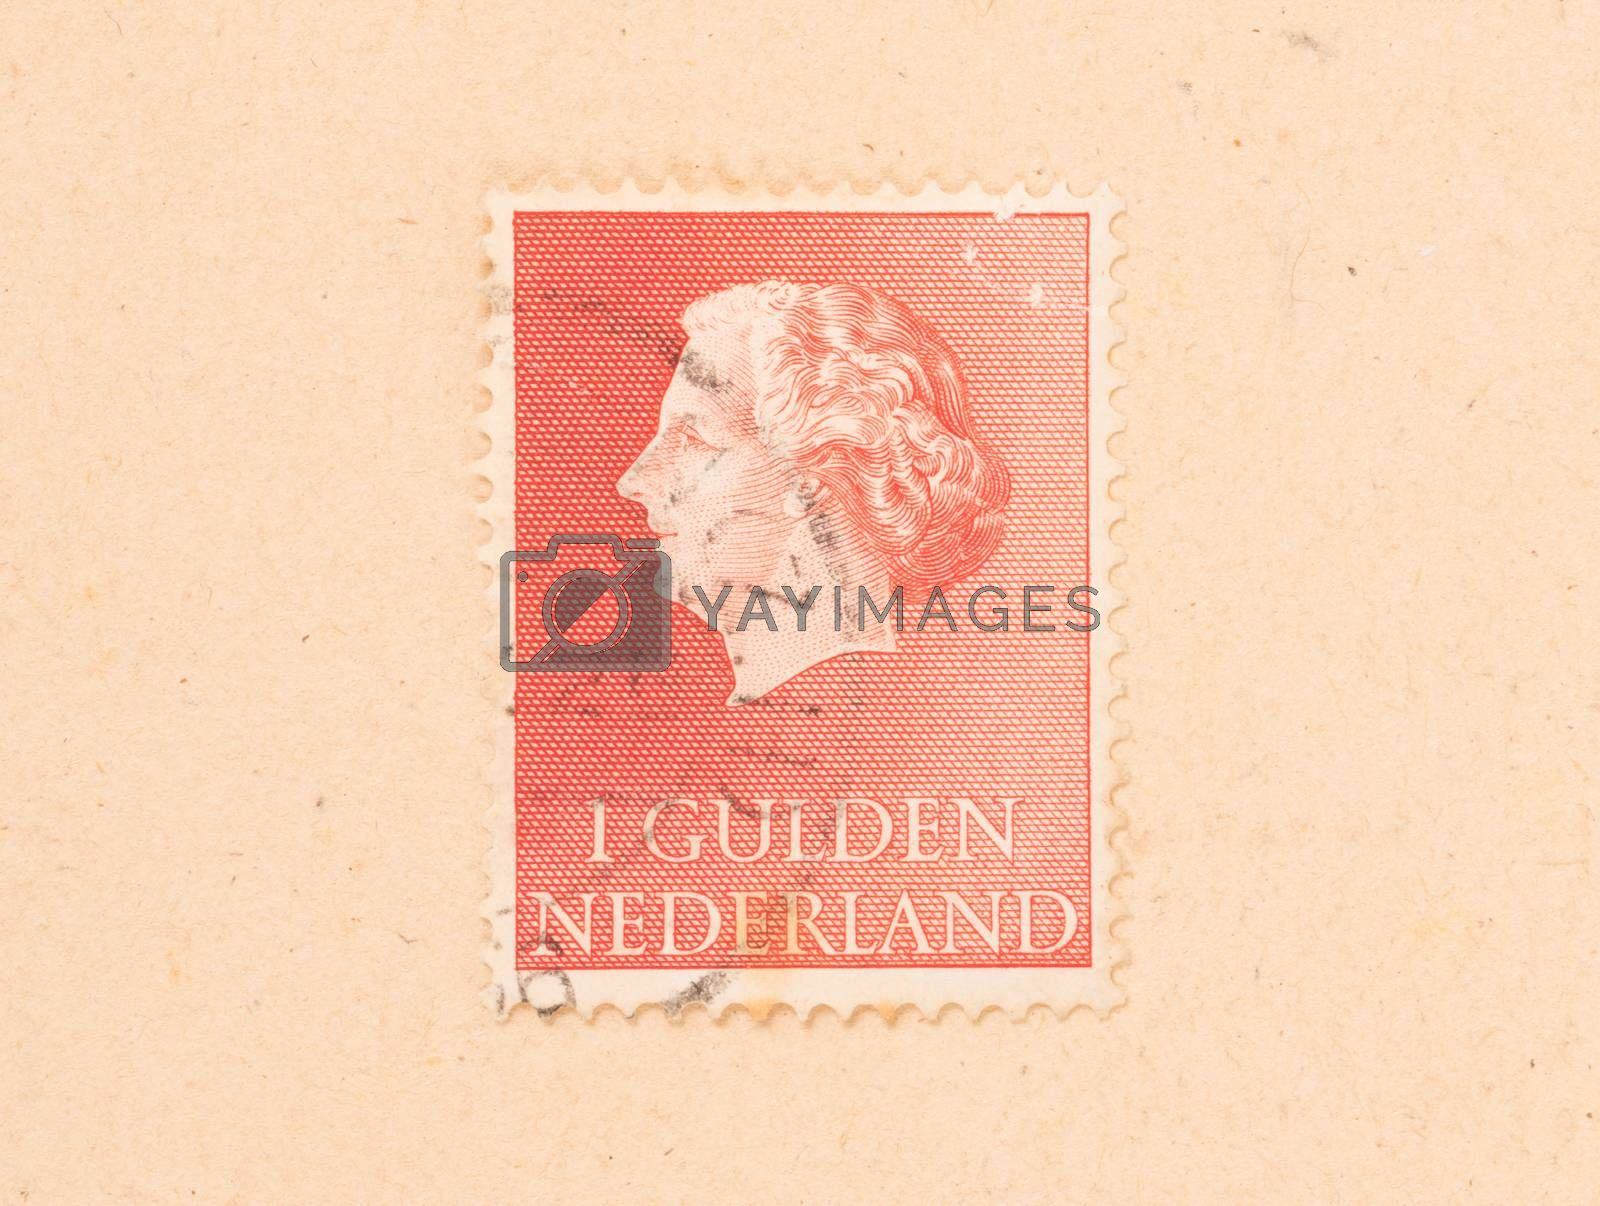 THE NETHERLANDS 1980: A stamp printed in the Netherlands shows t by michaklootwijk